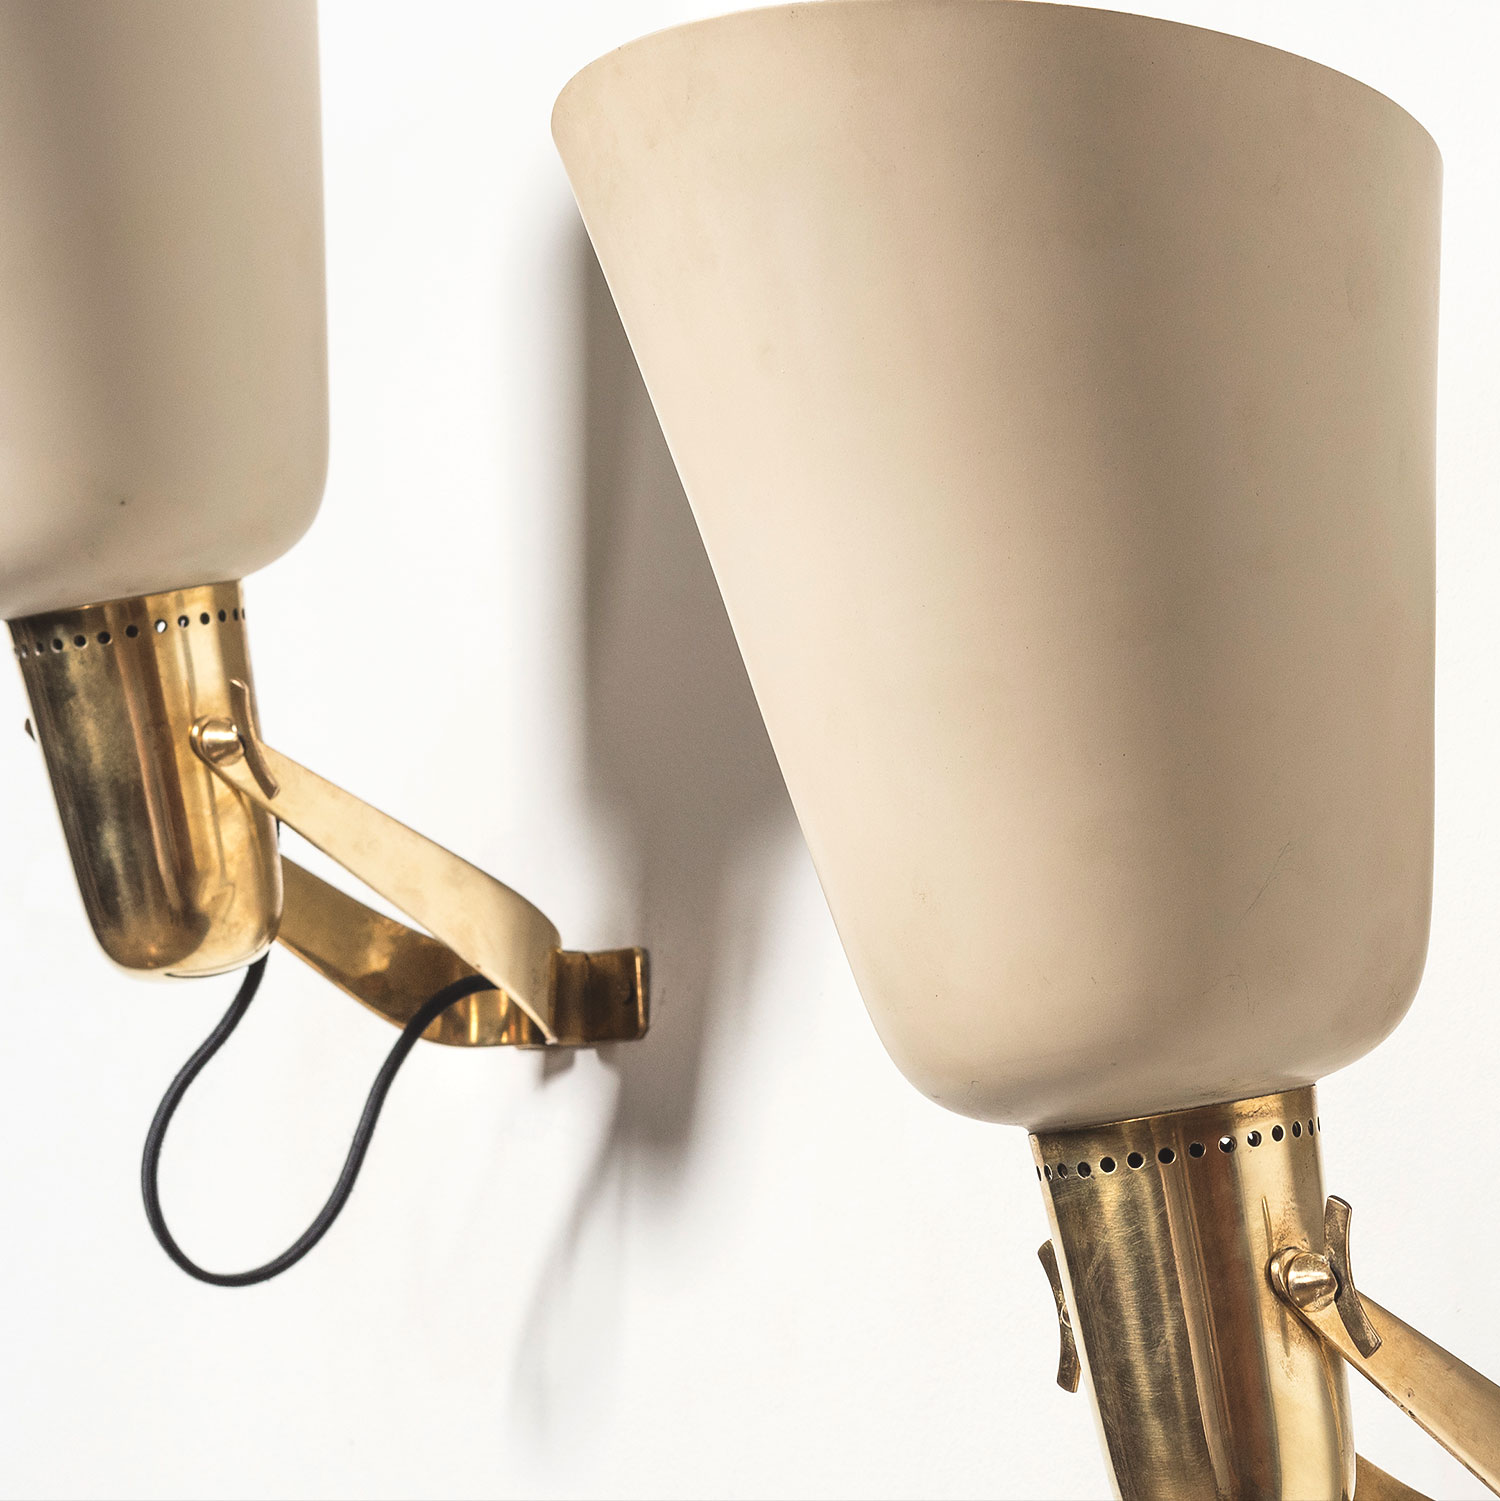 Gino Sarfatti |                                  Pair of wall lights